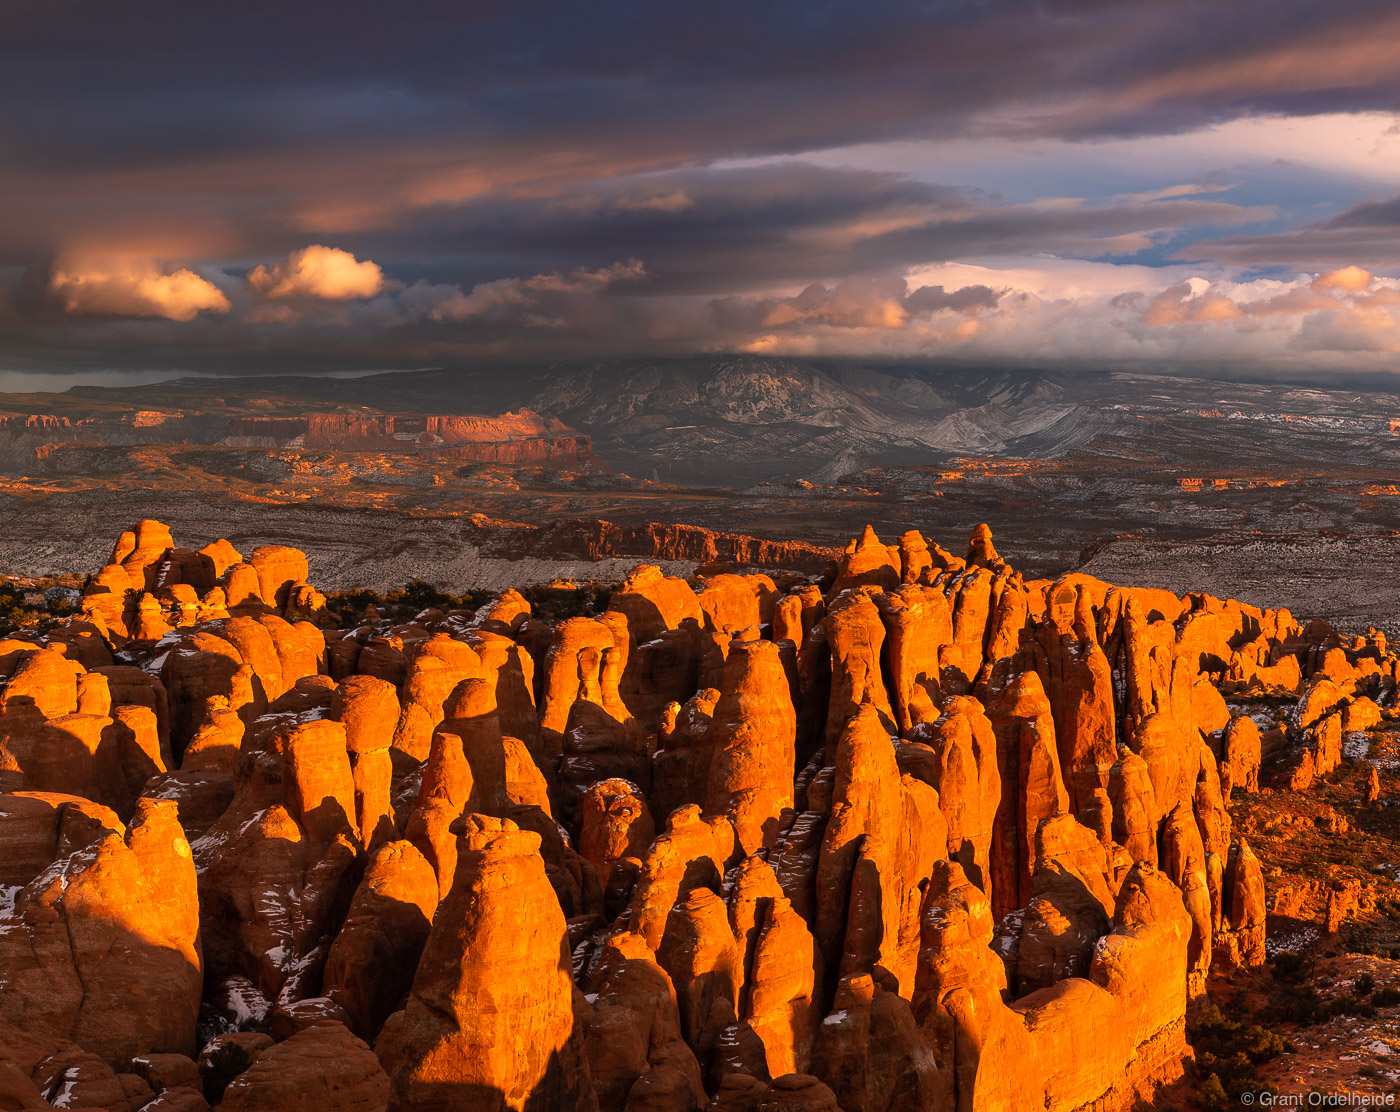 A dramatic winter sunset over the Fiery Furnace in Arches National Park.